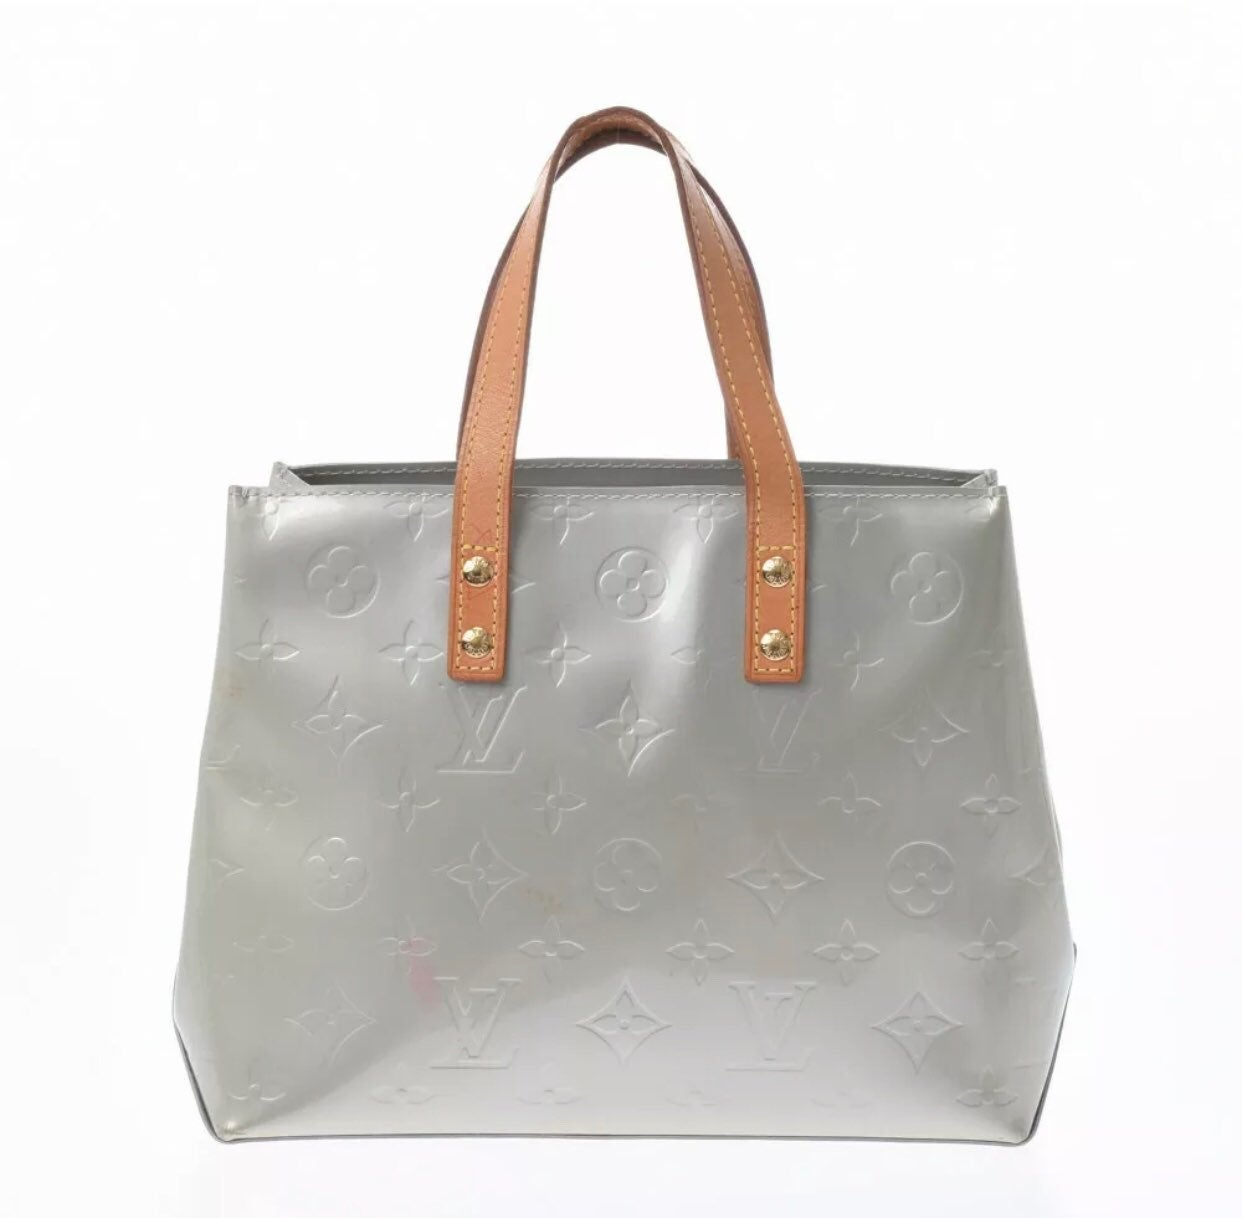 LOUIS VUITTON Vernis Lead PM Gris handba